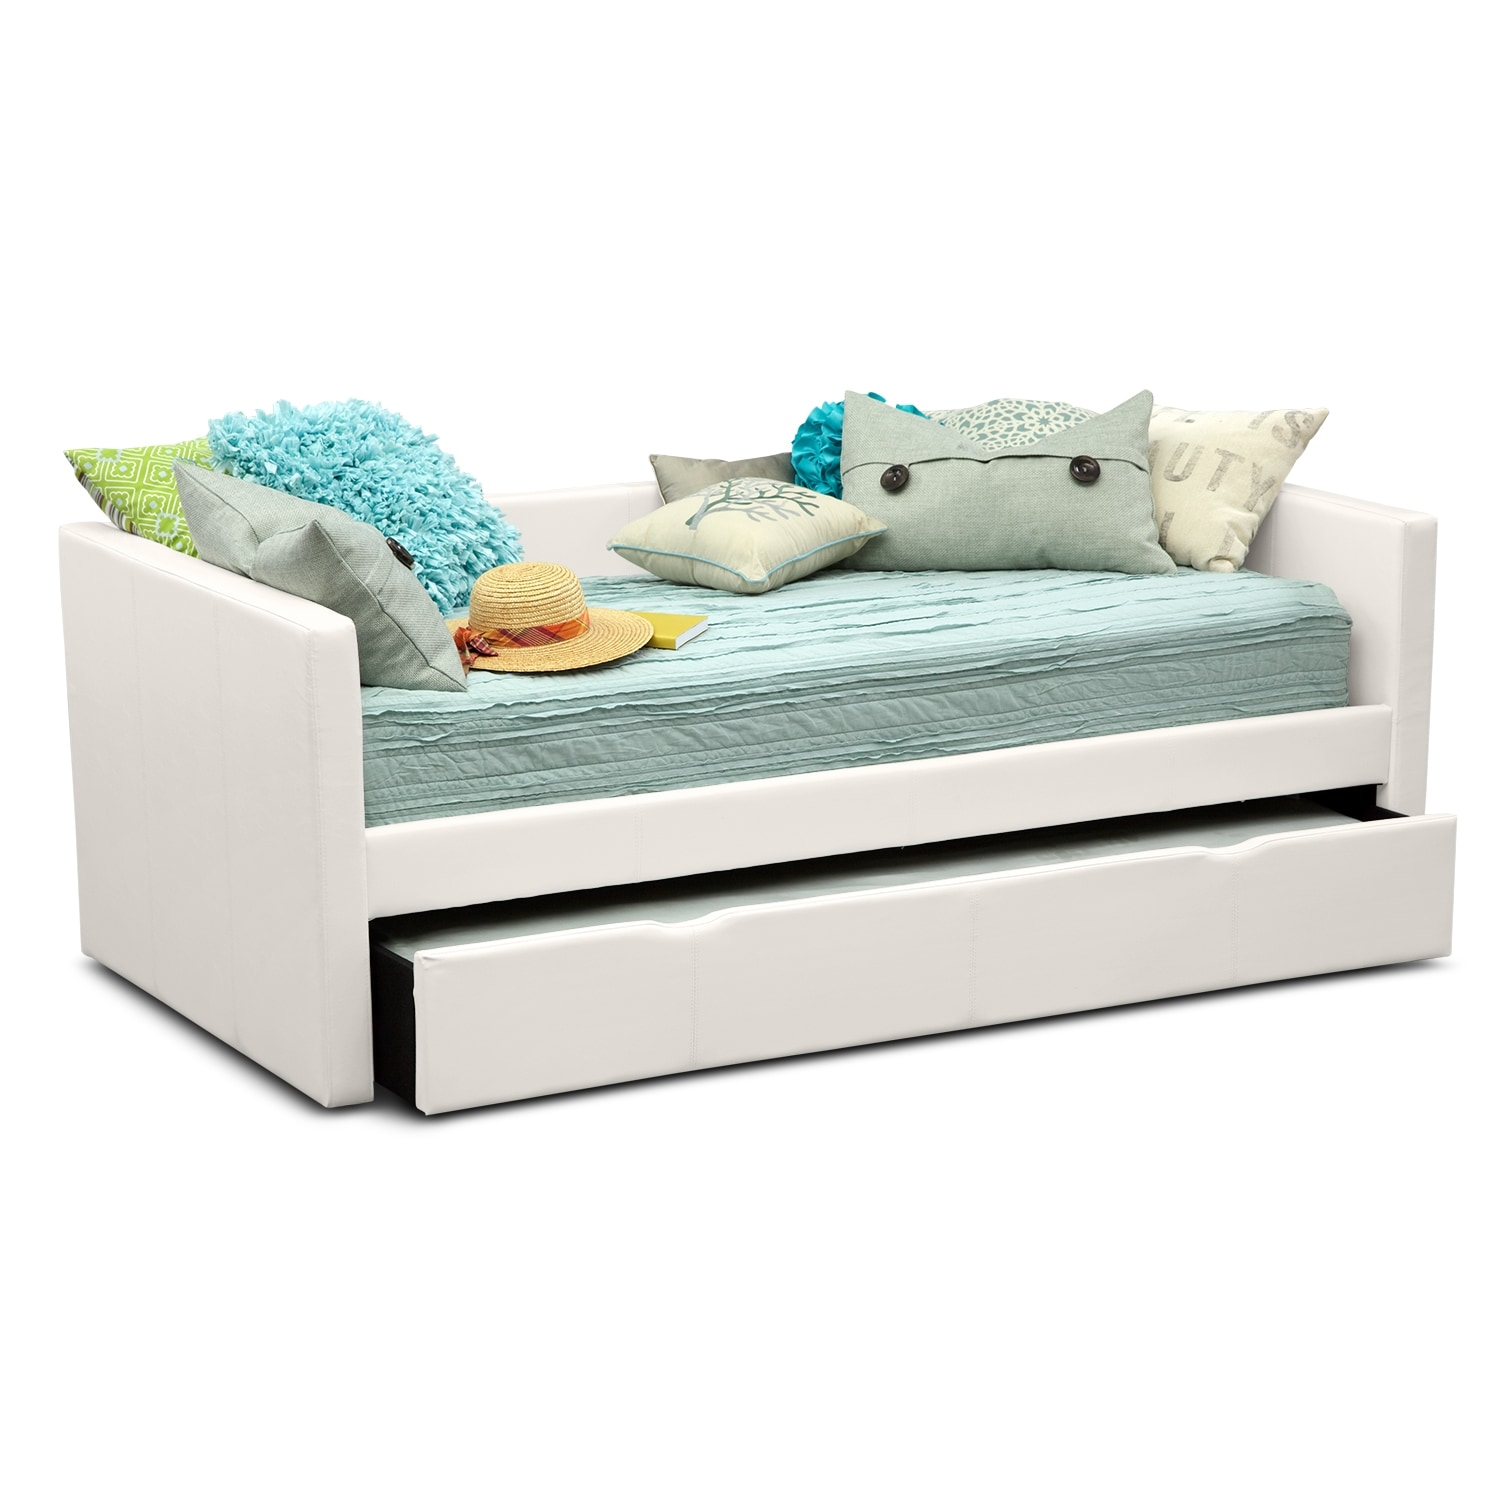 Carey twin daybed with trundle white american Twin bed with mattress included